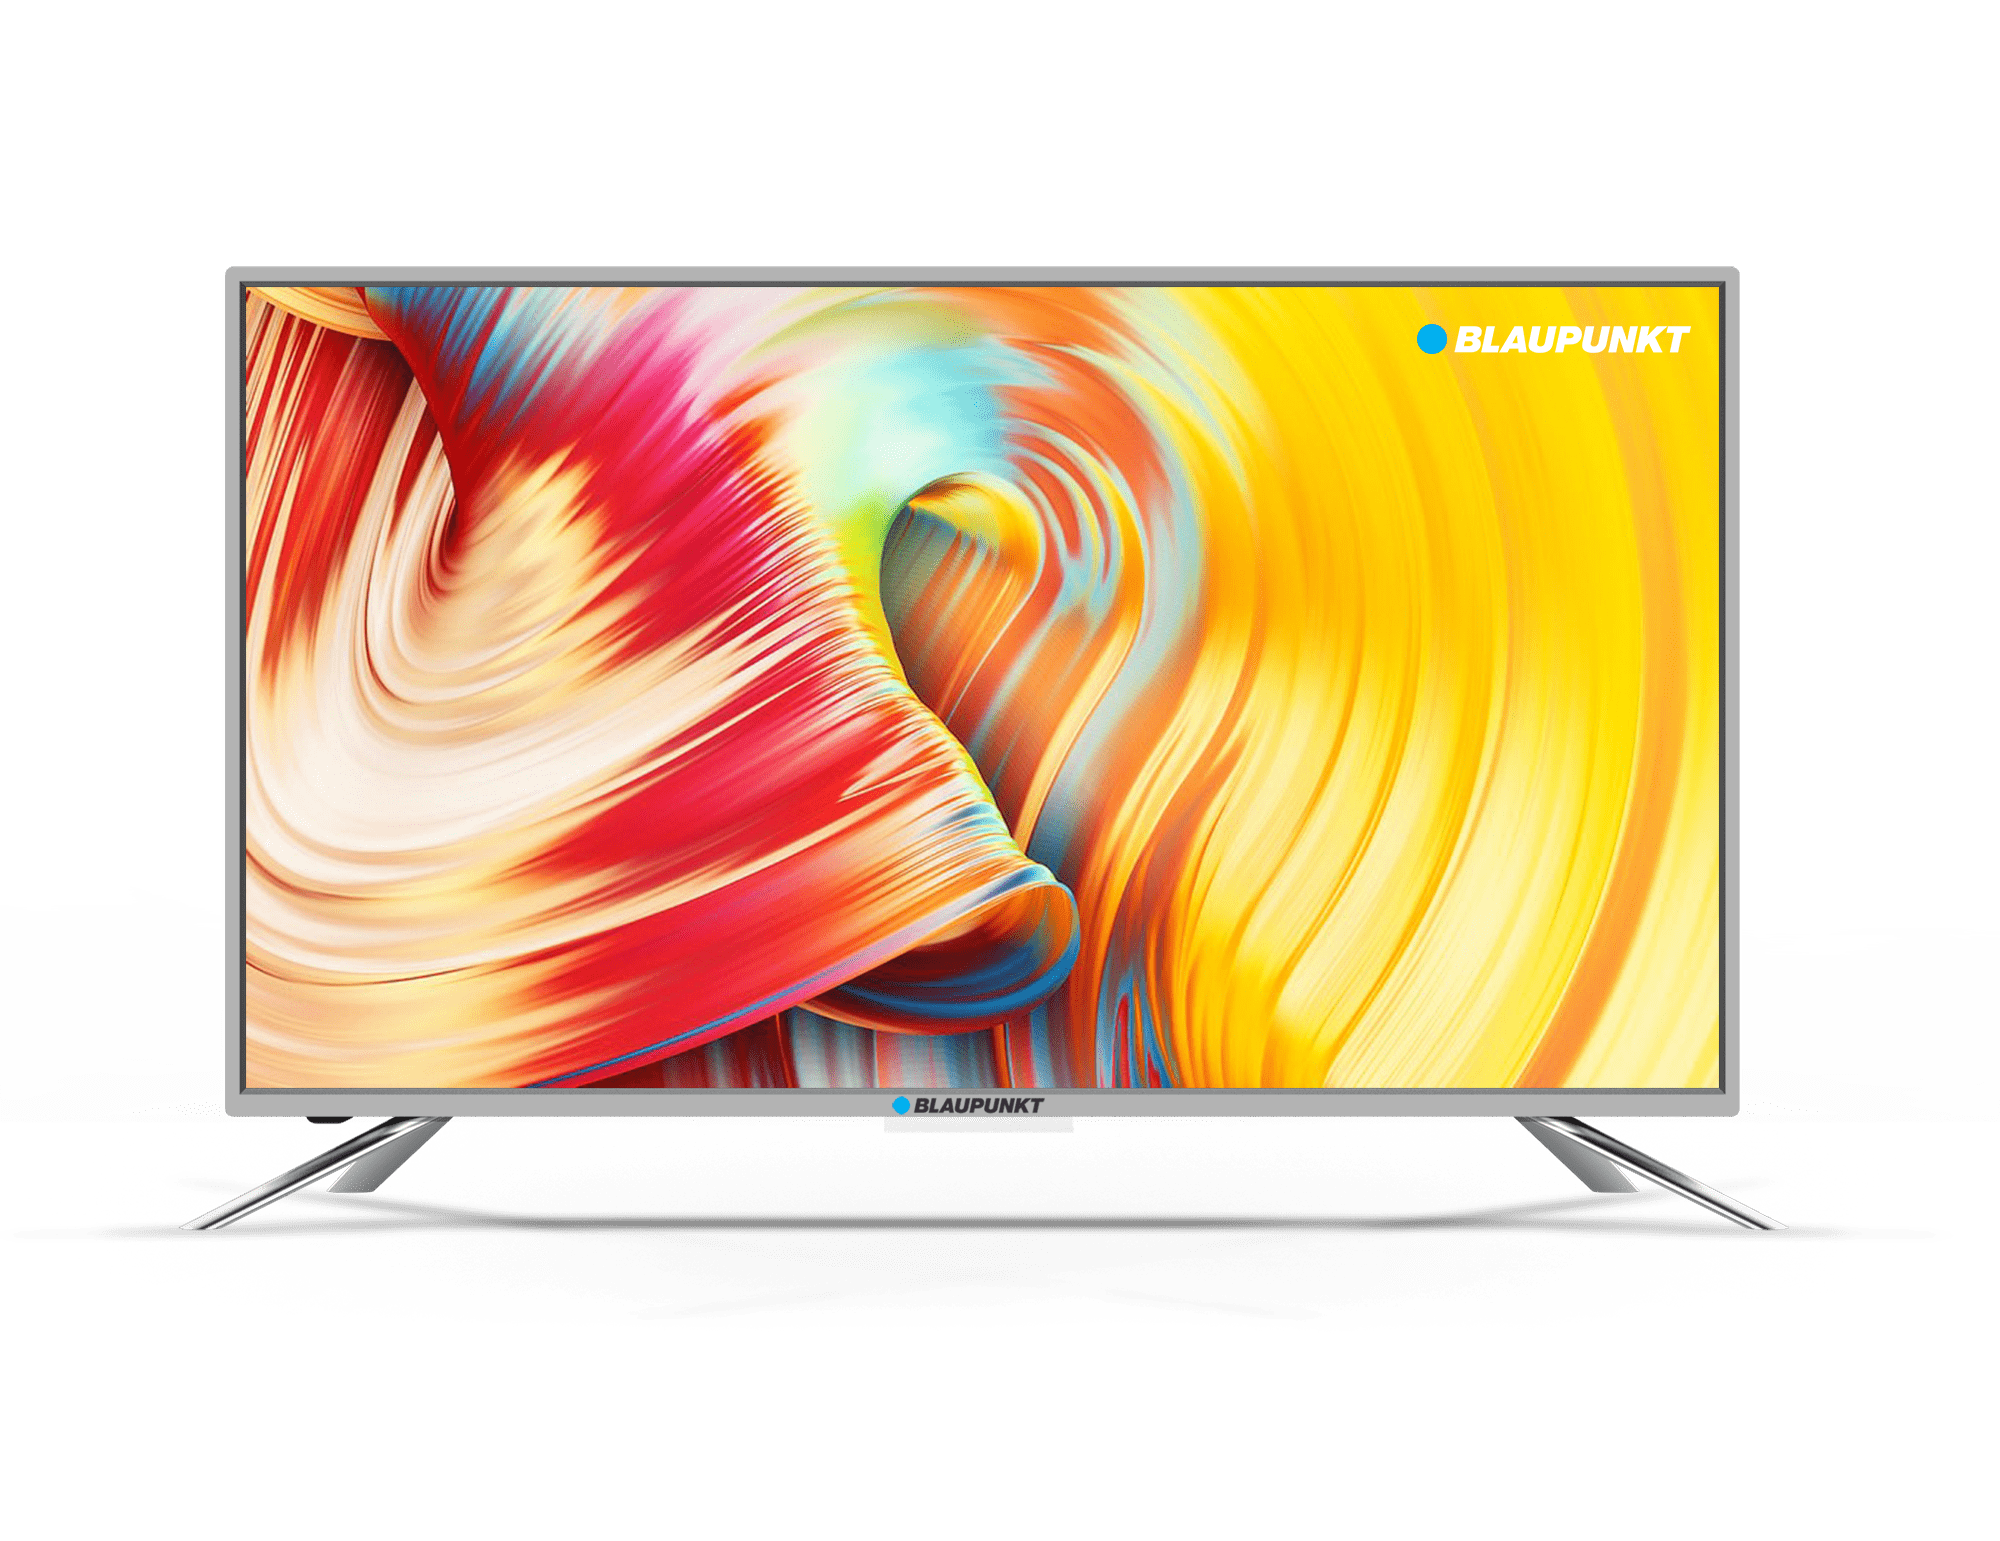 Blaupunkt launches smart televisions in India - TechnoFall